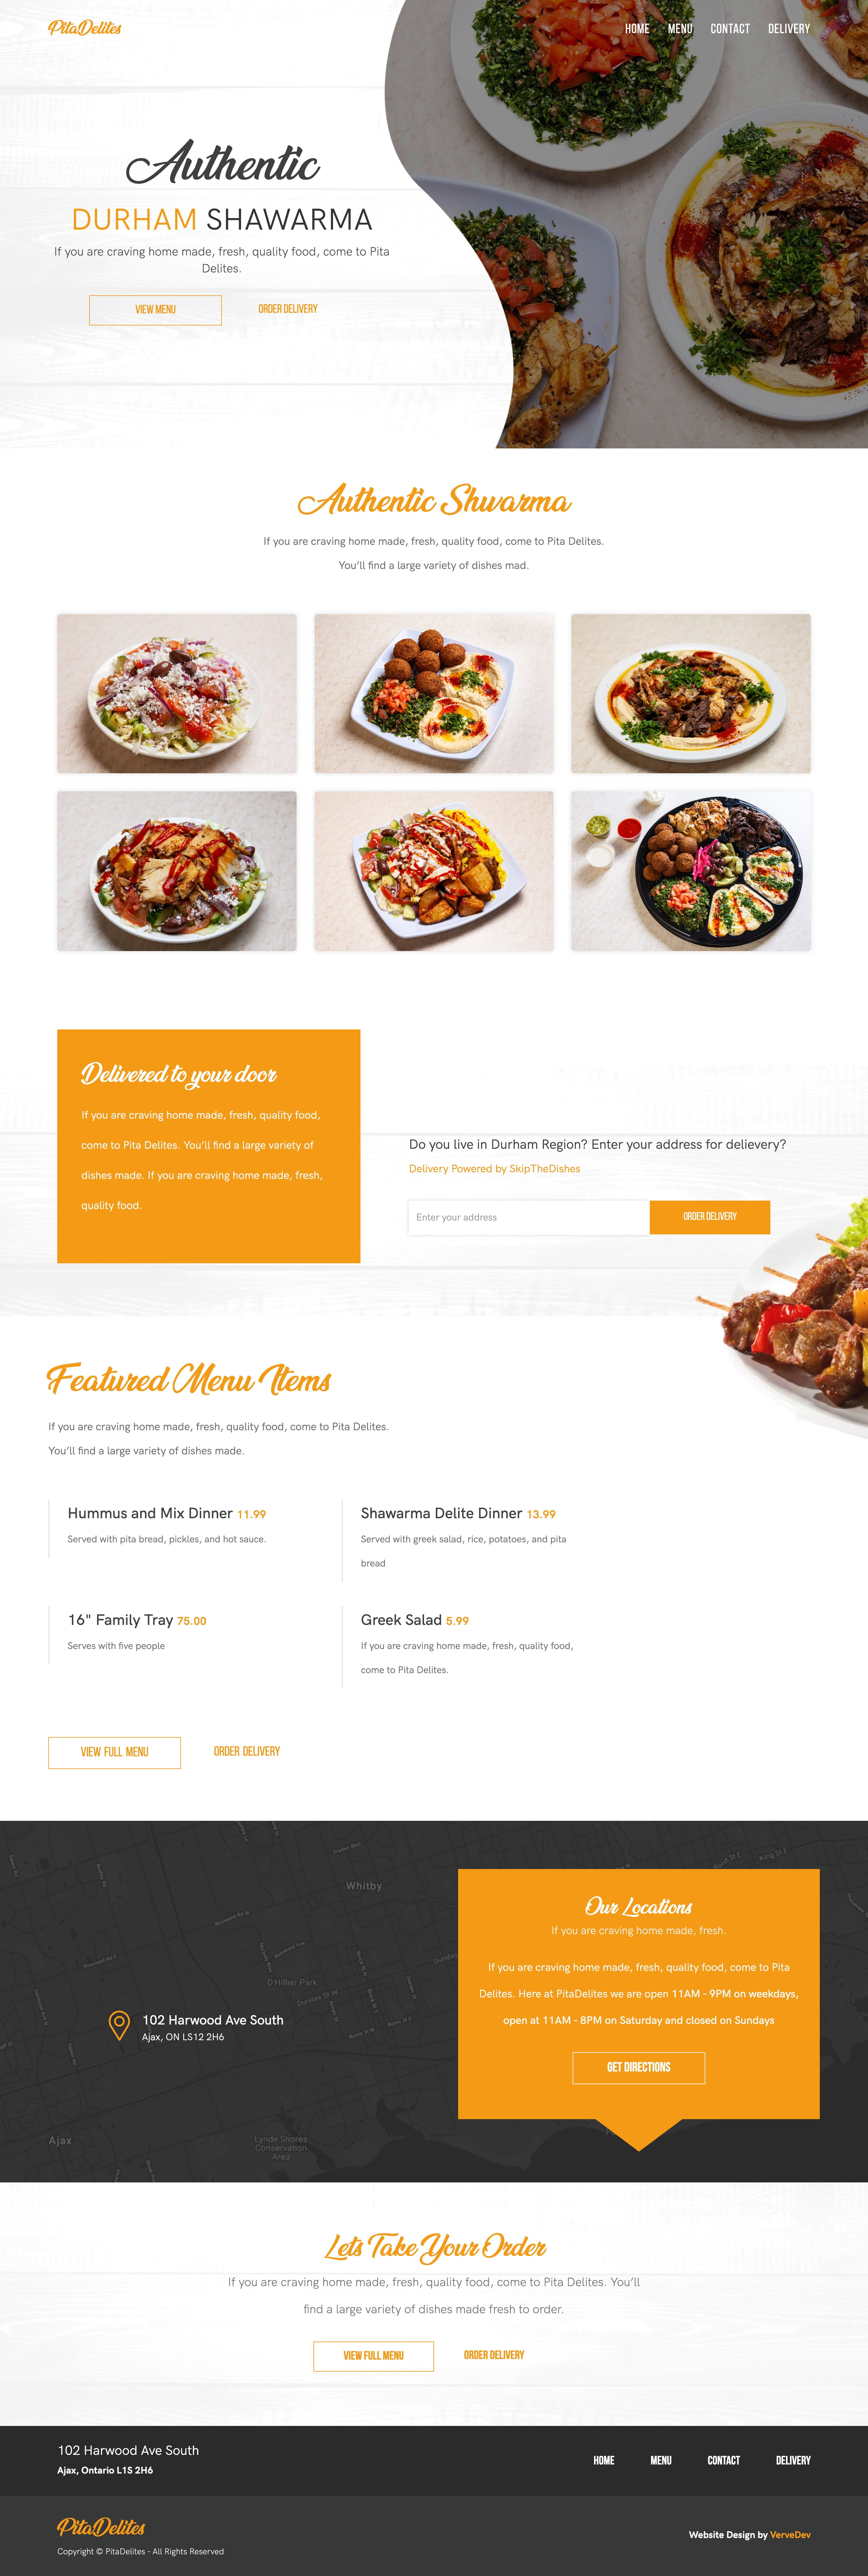 bowmanville-website-design-portfolio-1